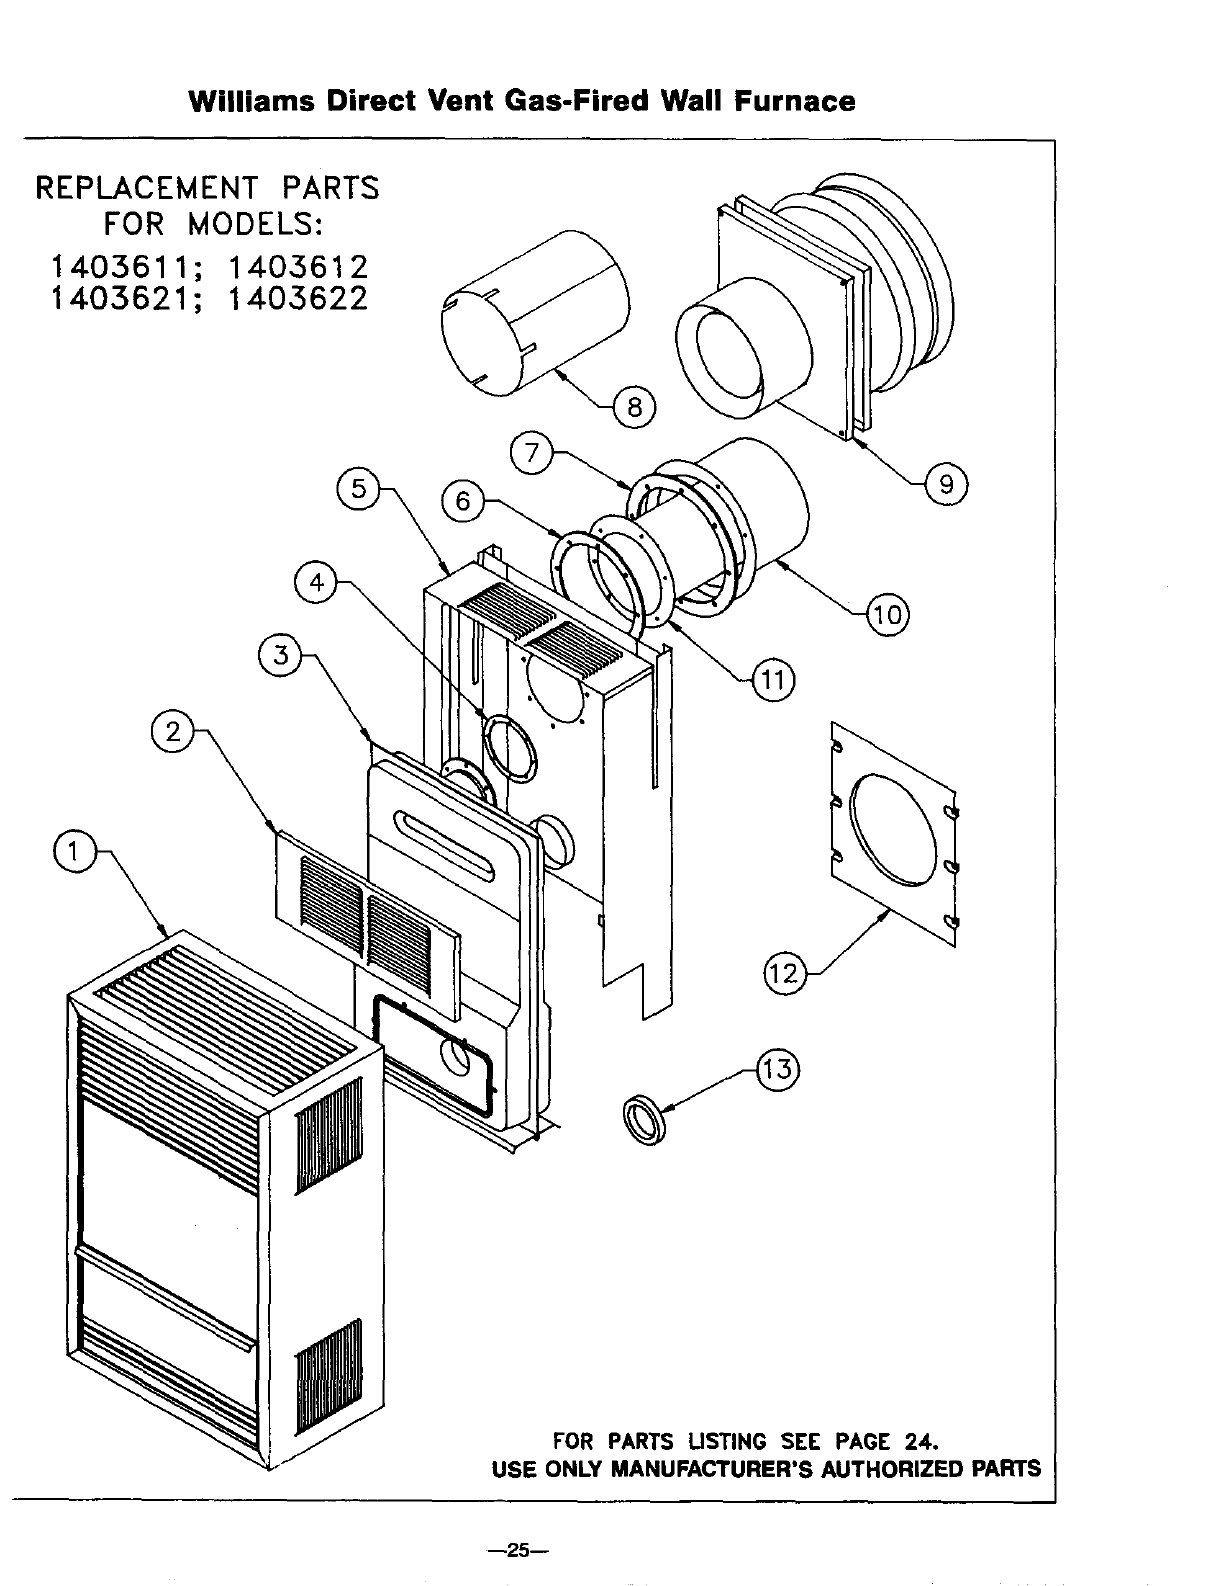 Williams 1403611 1403612 2203611 2203612 3003611 3003612 Page 25 Wall Furnace Thermostat Wiring Diagram